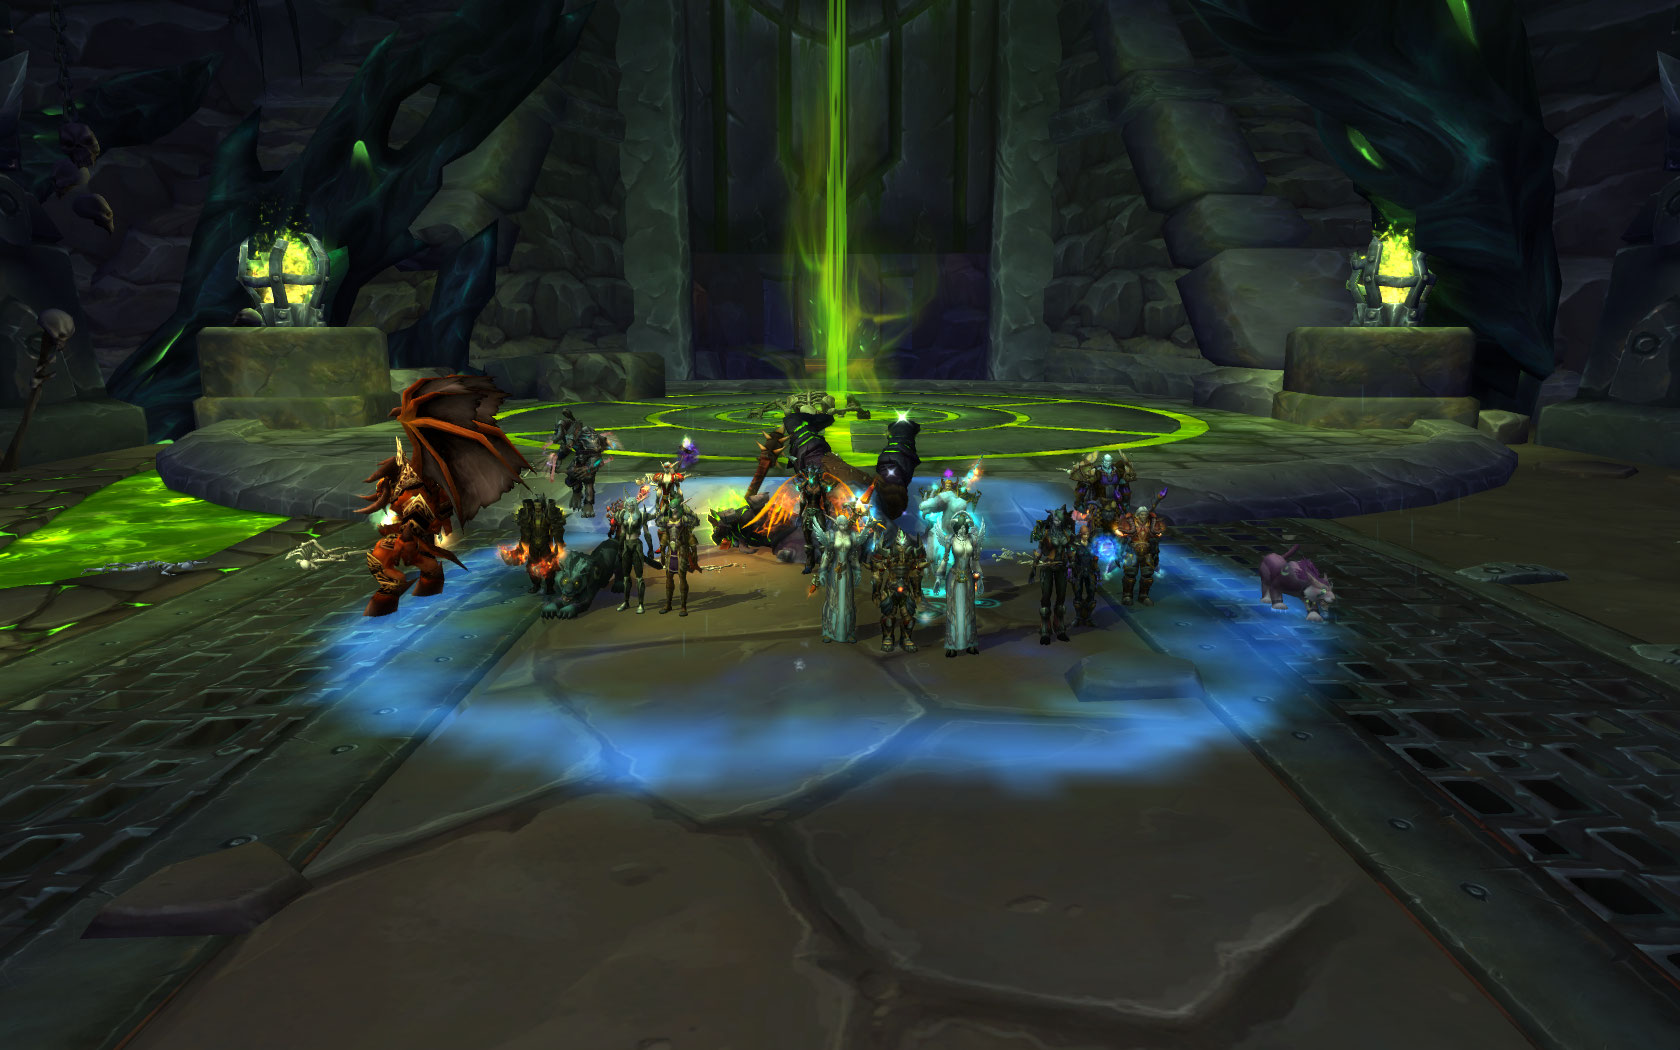 Team Ice goes heroic!